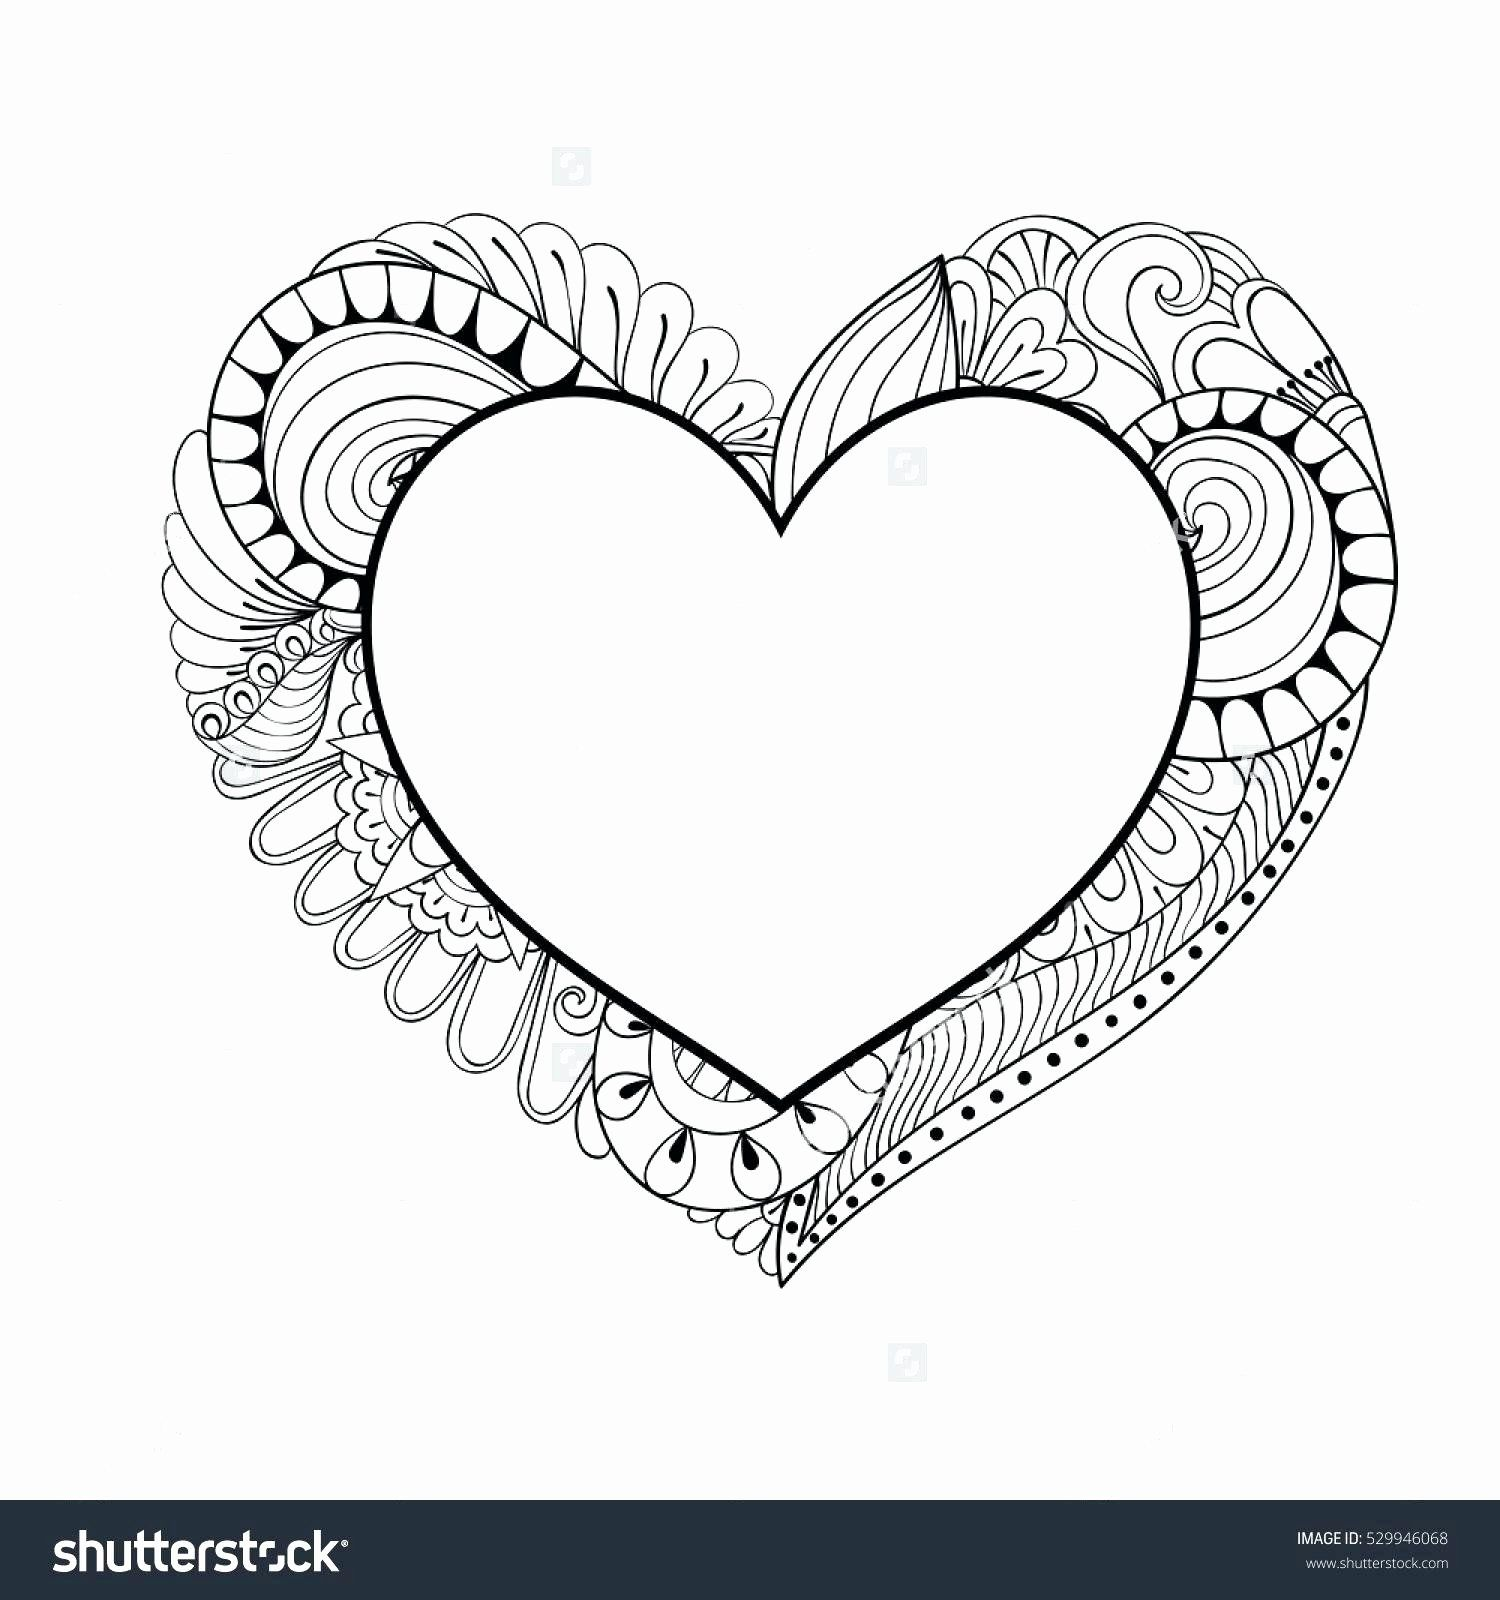 Conversation Heart Coloring Page Di 2020